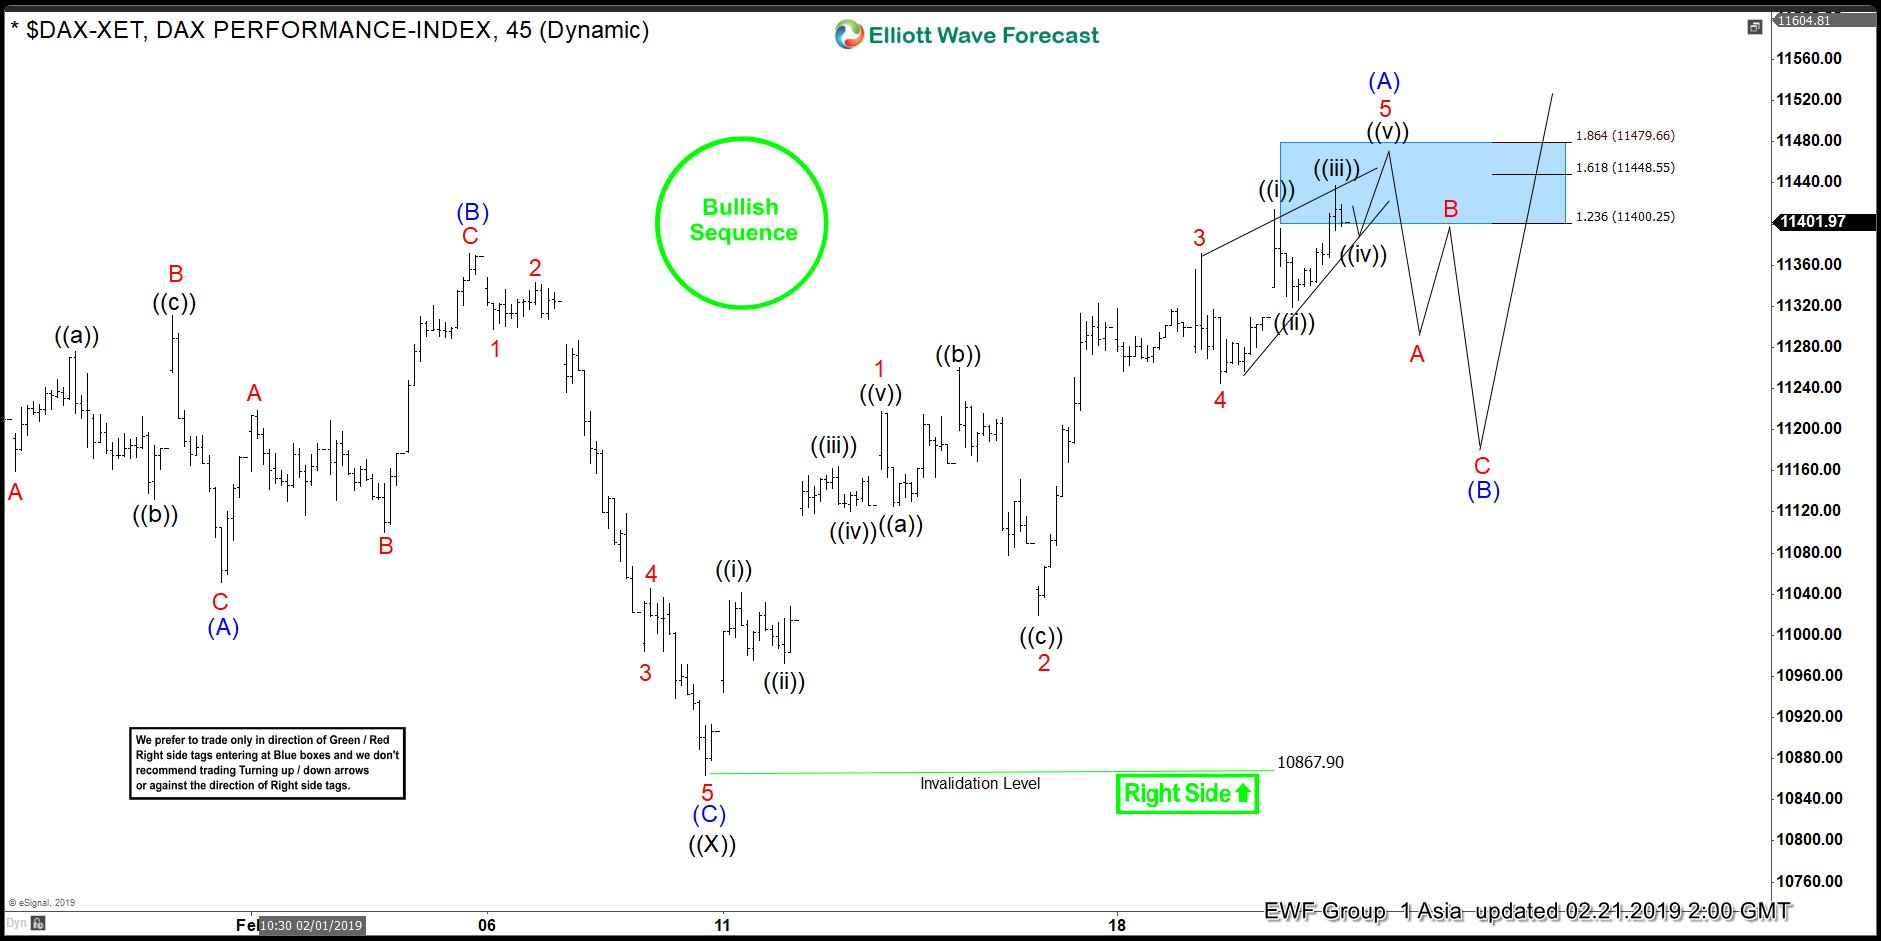 Elliott Wave View: DAX Bullish Sequence Favors More Upside